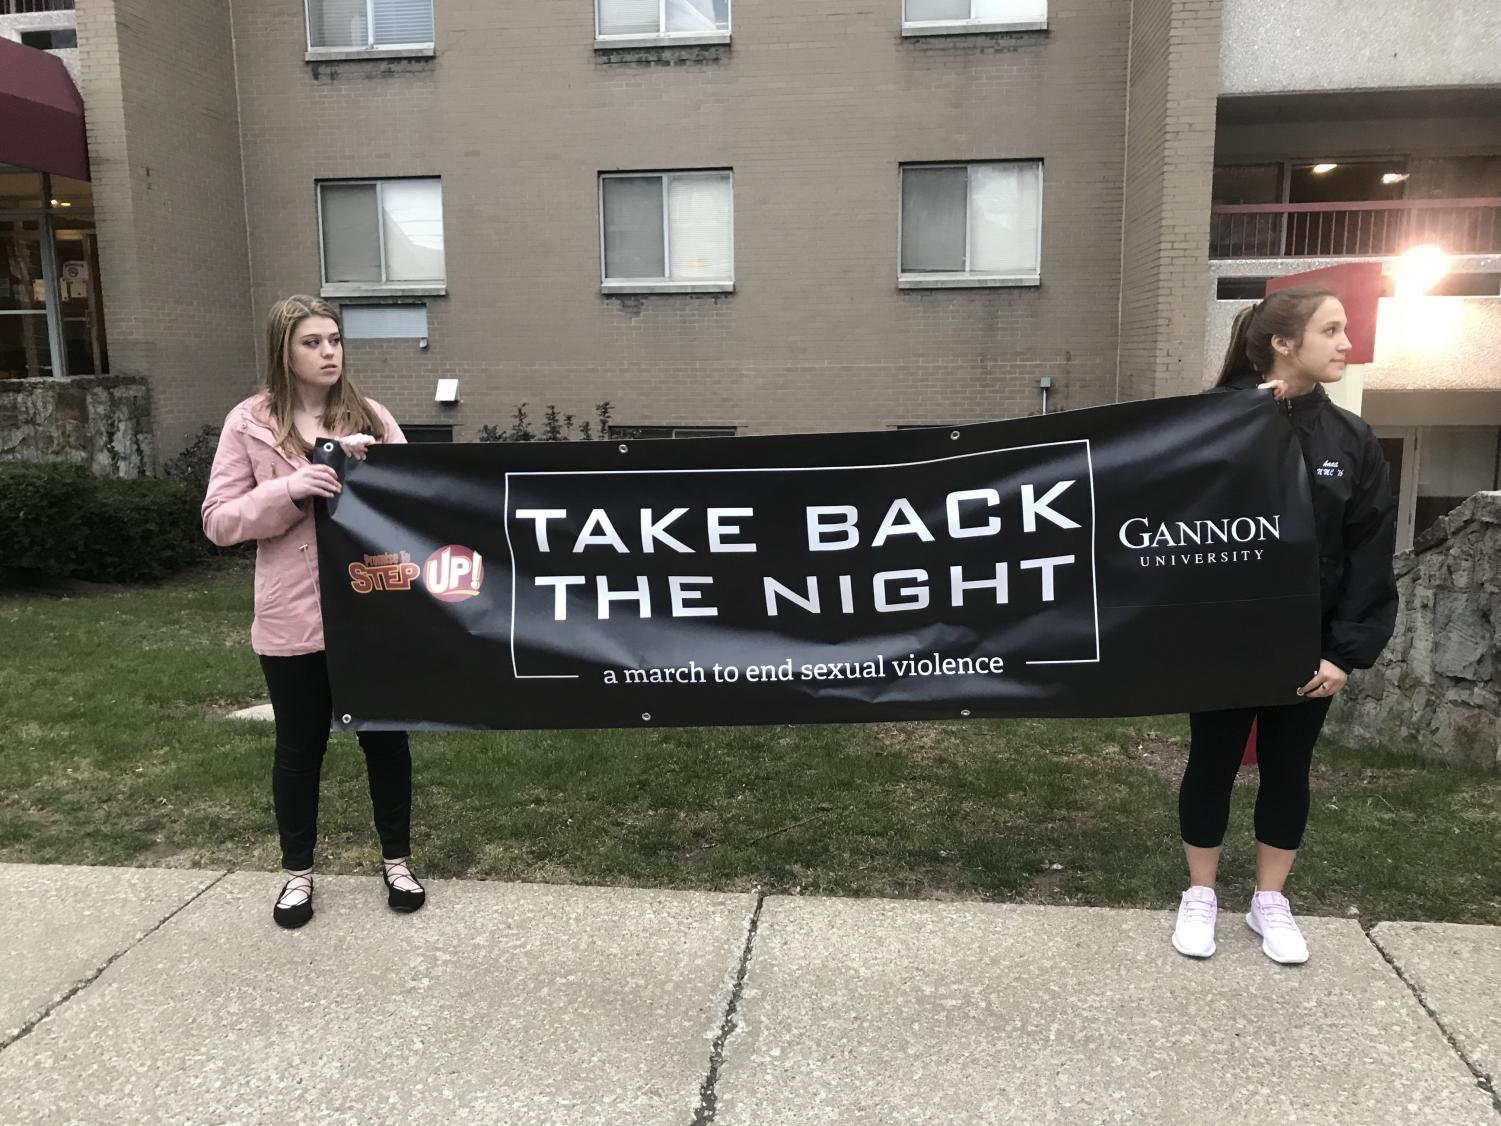 Students from Mercyhurst University and Gannon University participated in the annual Take Back the Night march to advocate for safe communities and respectful relationships through awareness events and initiatives. Mercyhurst will hold another event for Sexual Assault Awareness Month at 7:30 p.m. on April 24 in the Loft, Old Main 312.